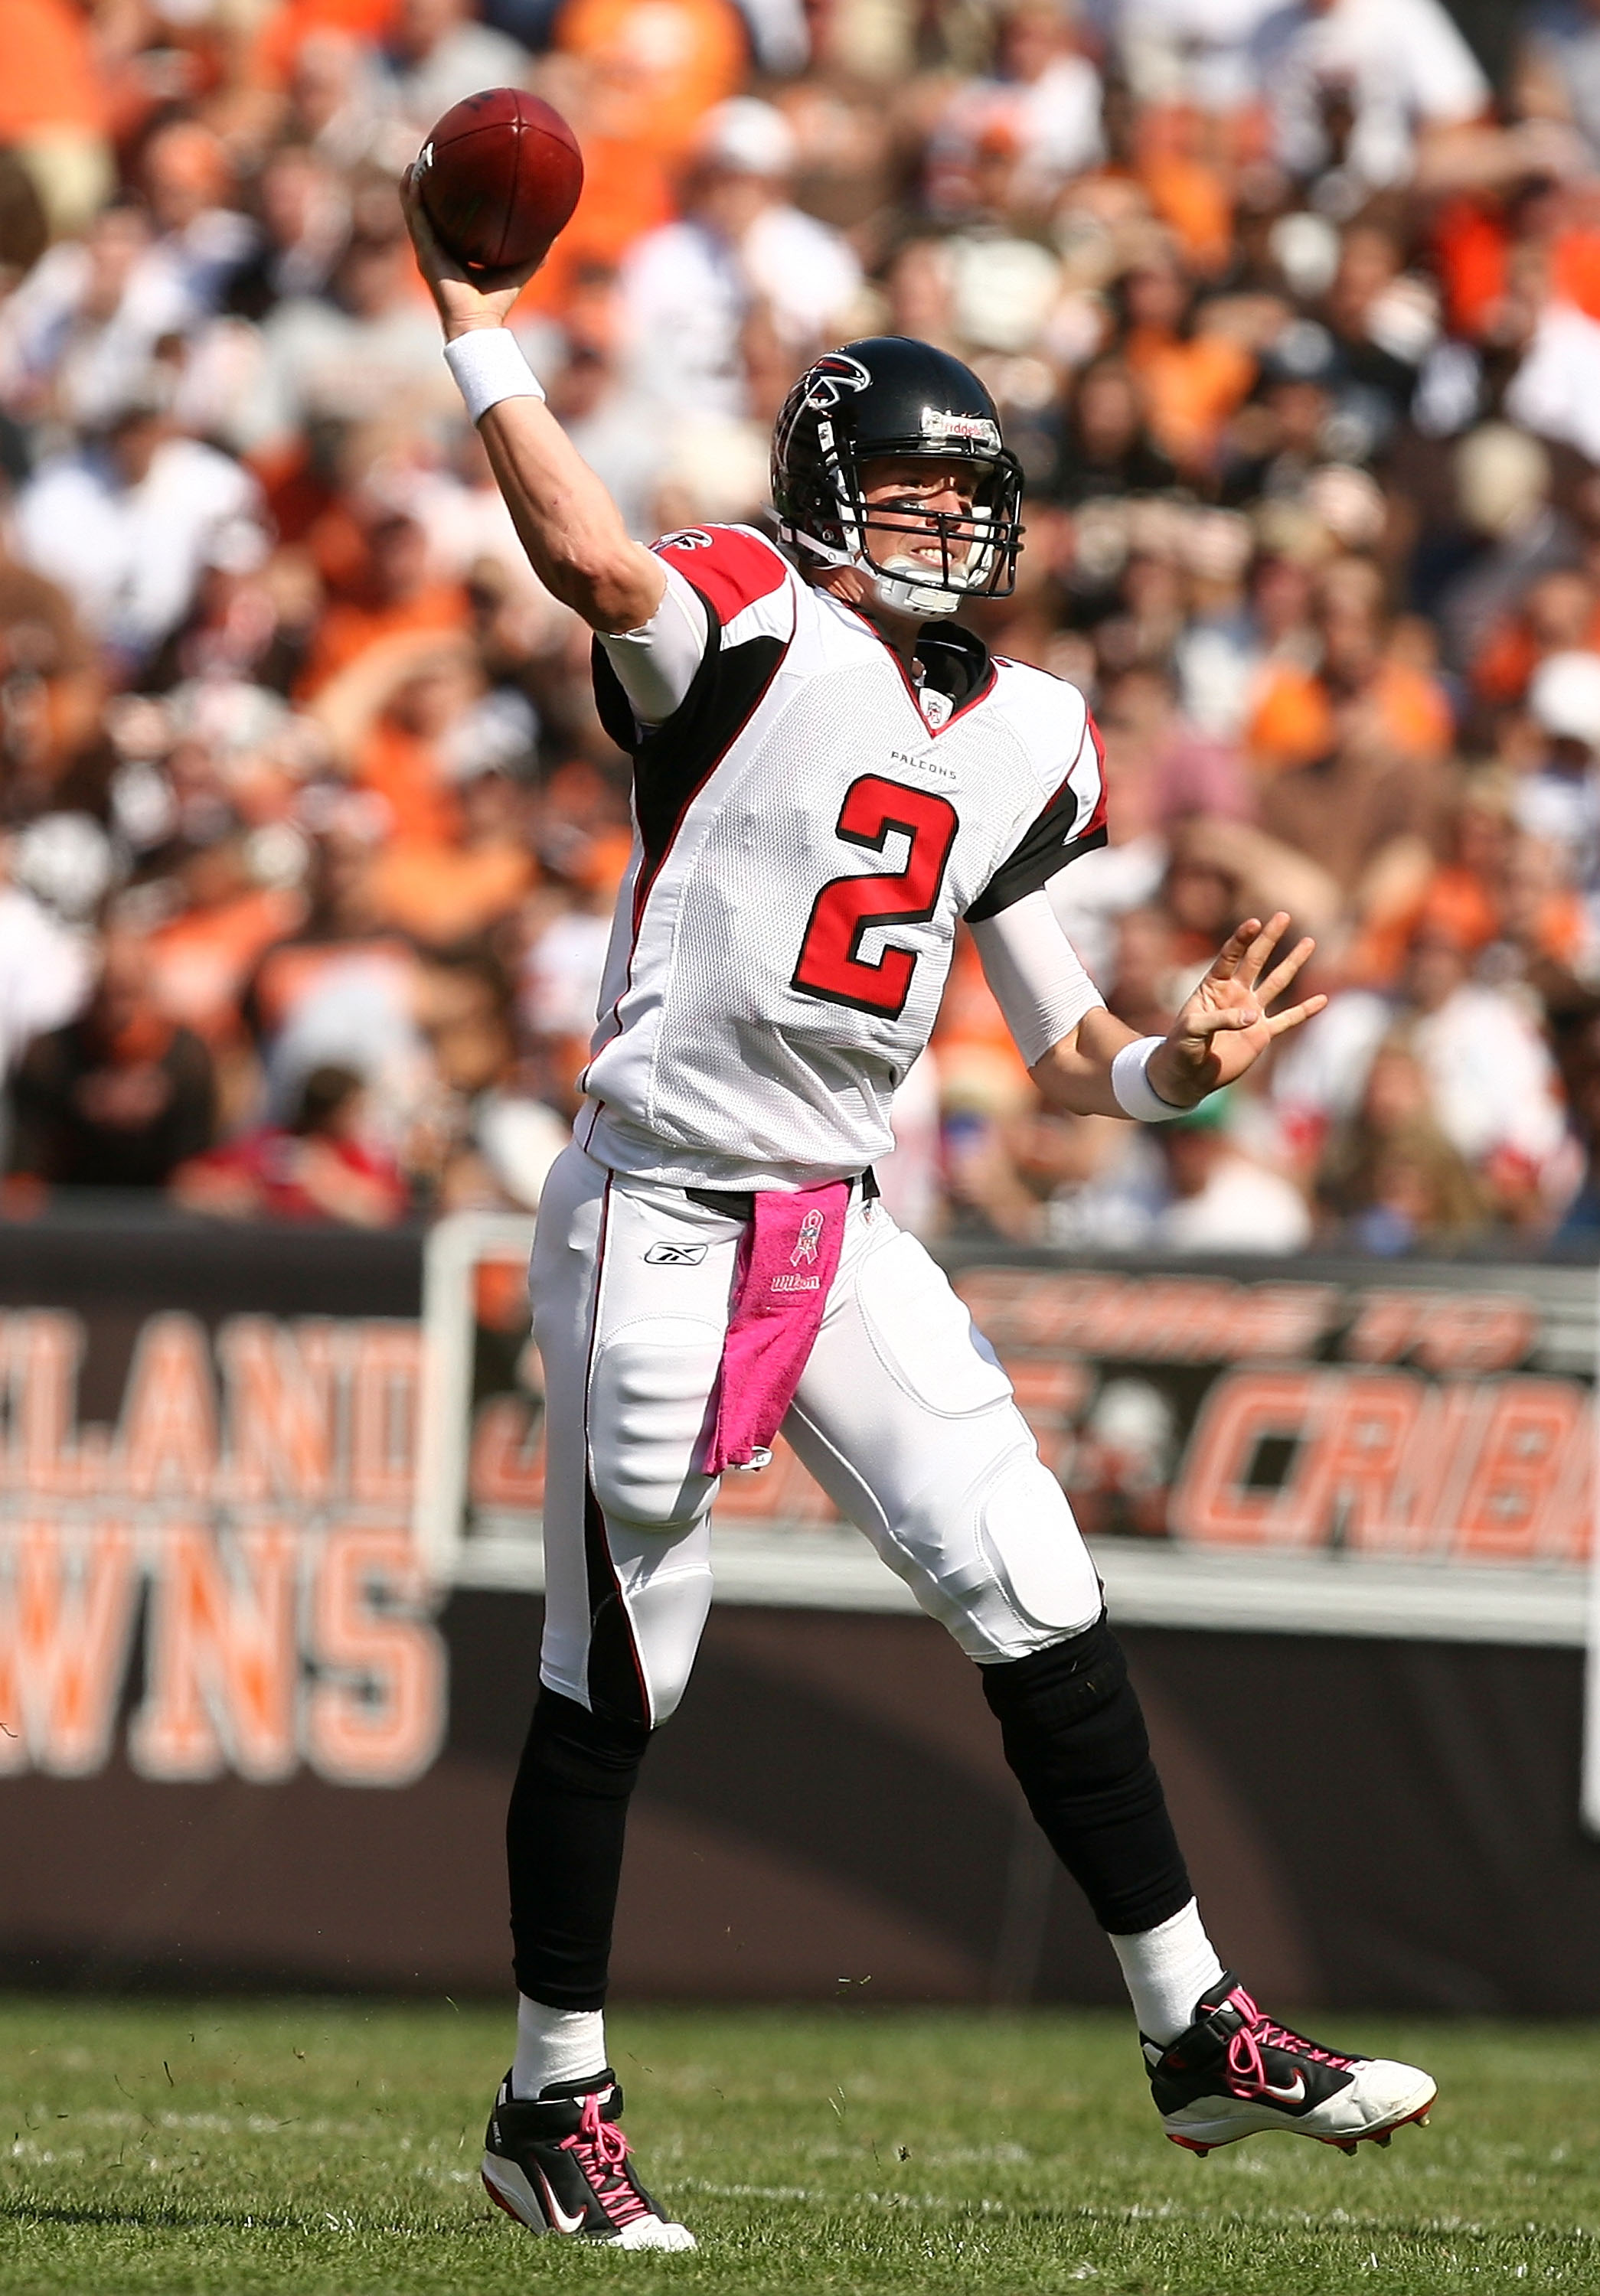 CLEVELAND - OCTOBER 10:  Quarterback Matt Ryan #2 of the Atlanta Falcons throws to a receiver against the Cleveland Browns at Cleveland Browns Stadium on October 10, 2010 in Cleveland, Ohio.  (Photo by Matt Sullivan/Getty Images)